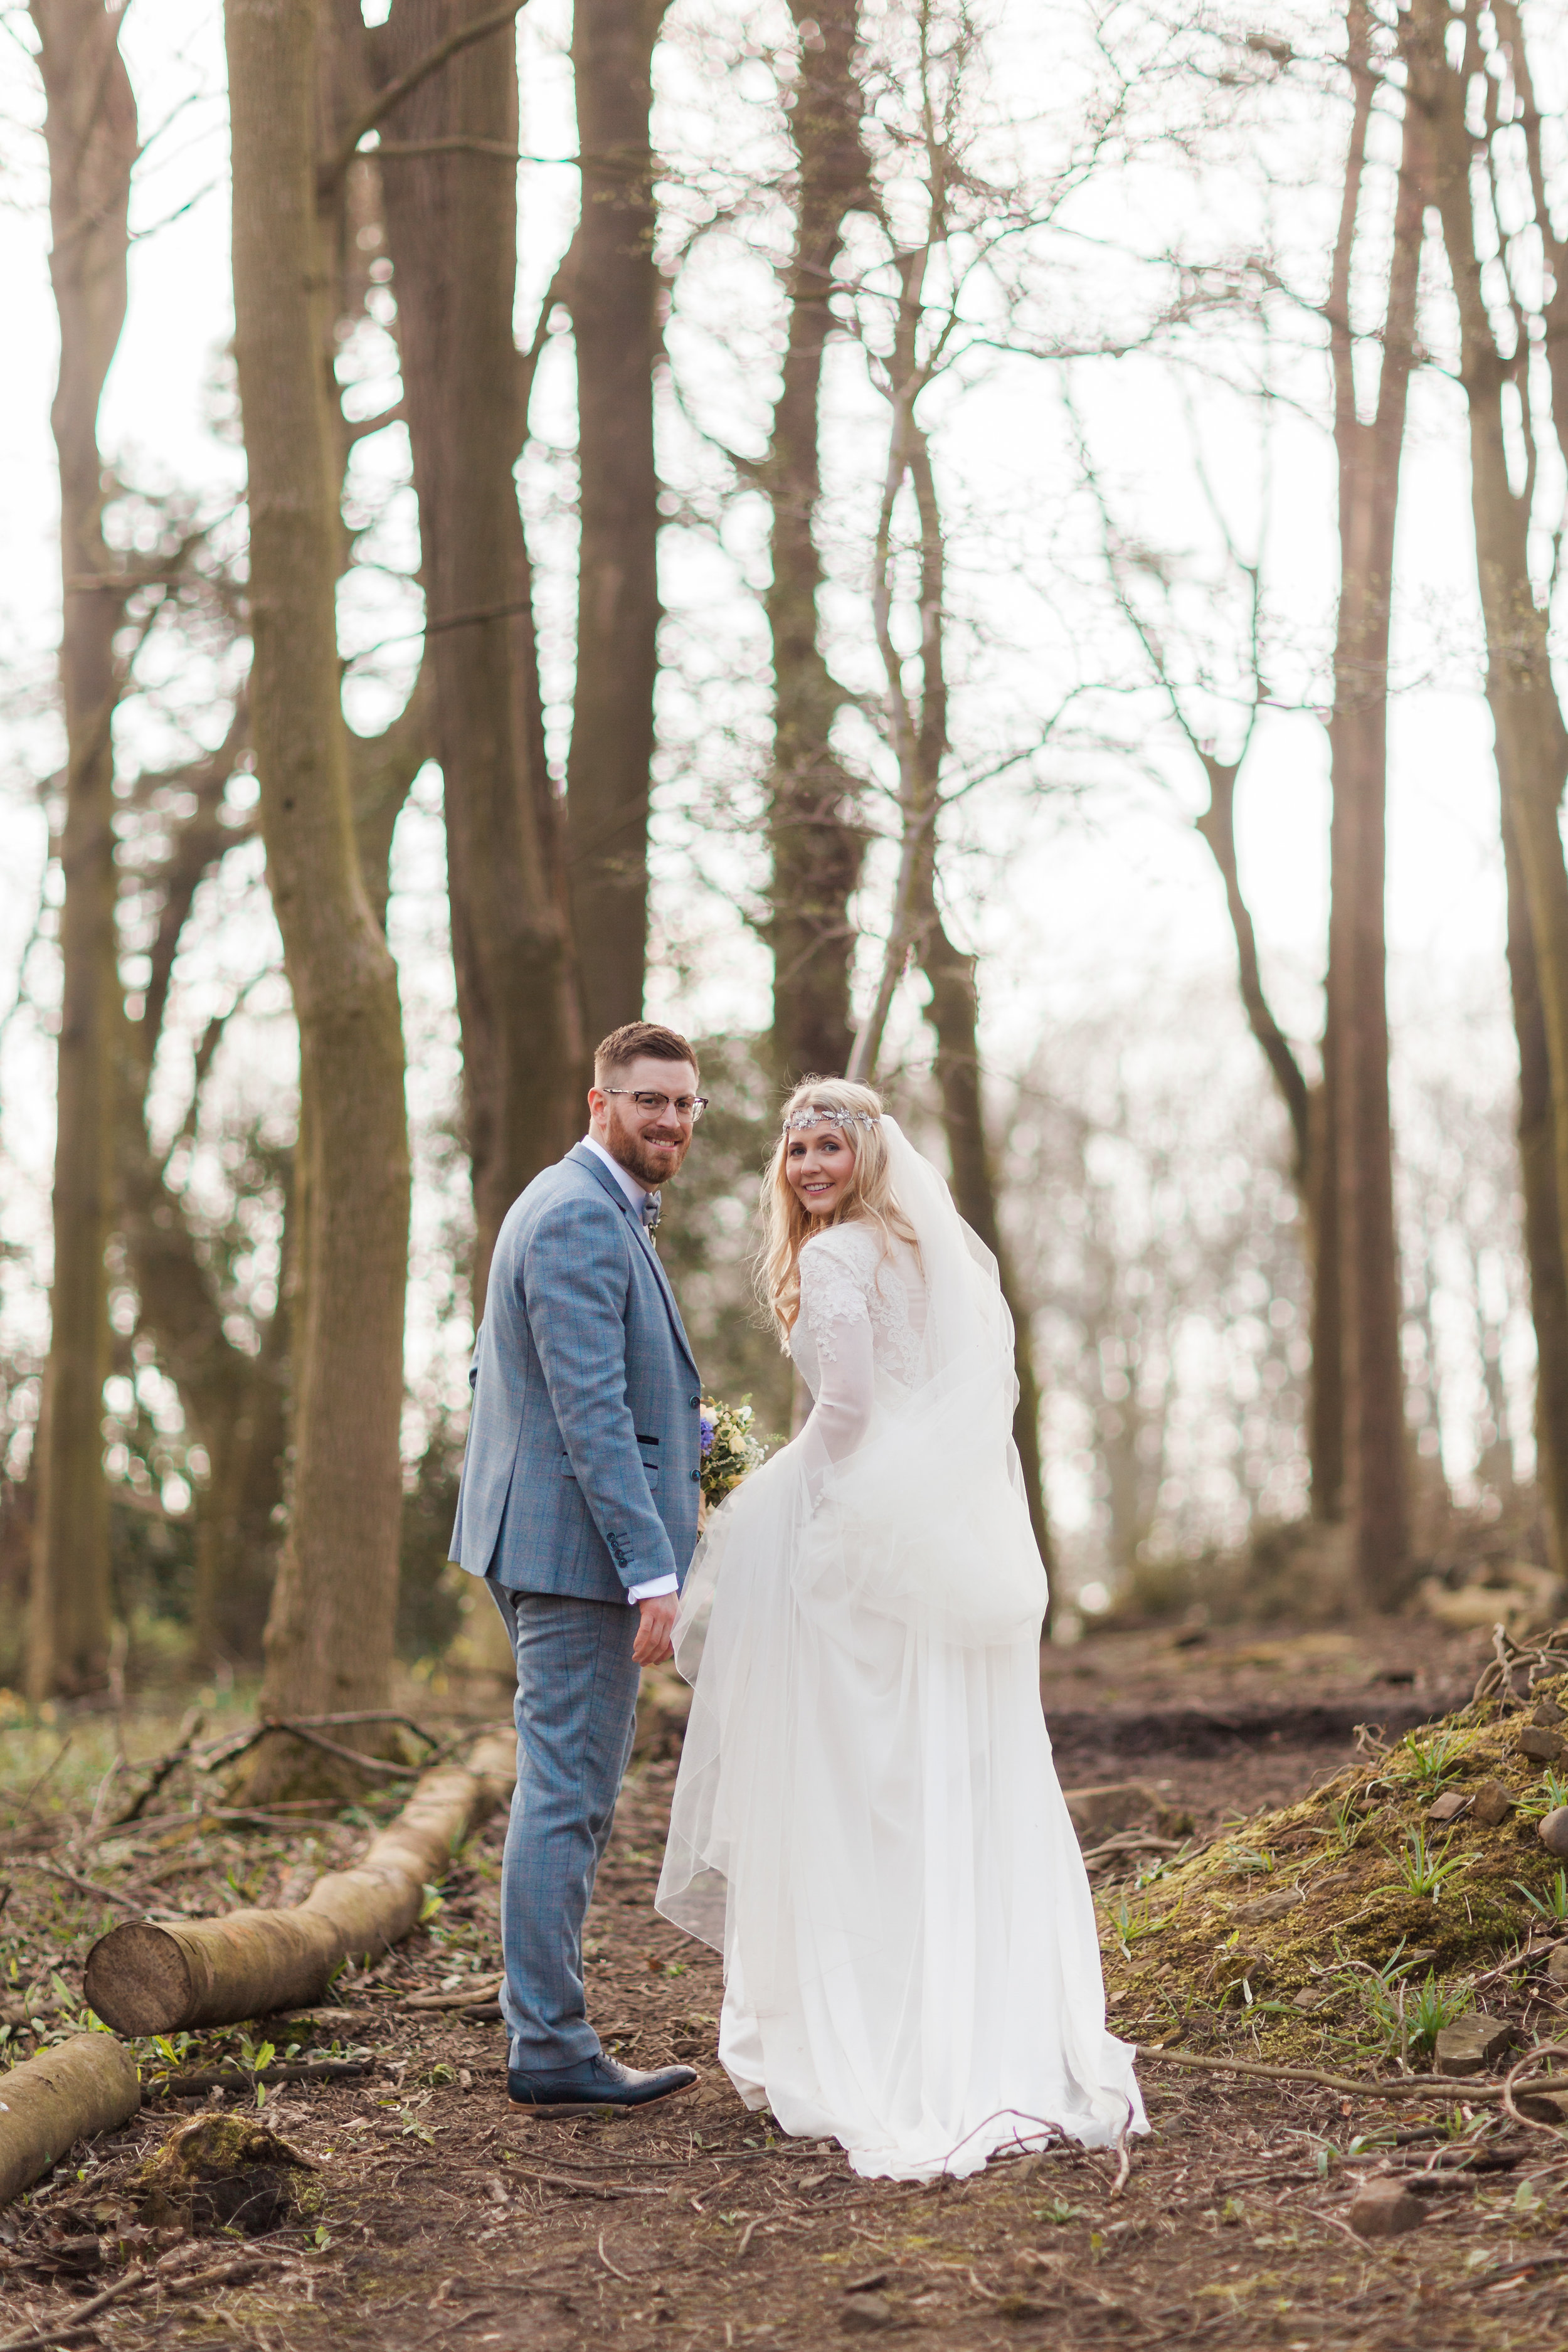 Married Couple in Woods